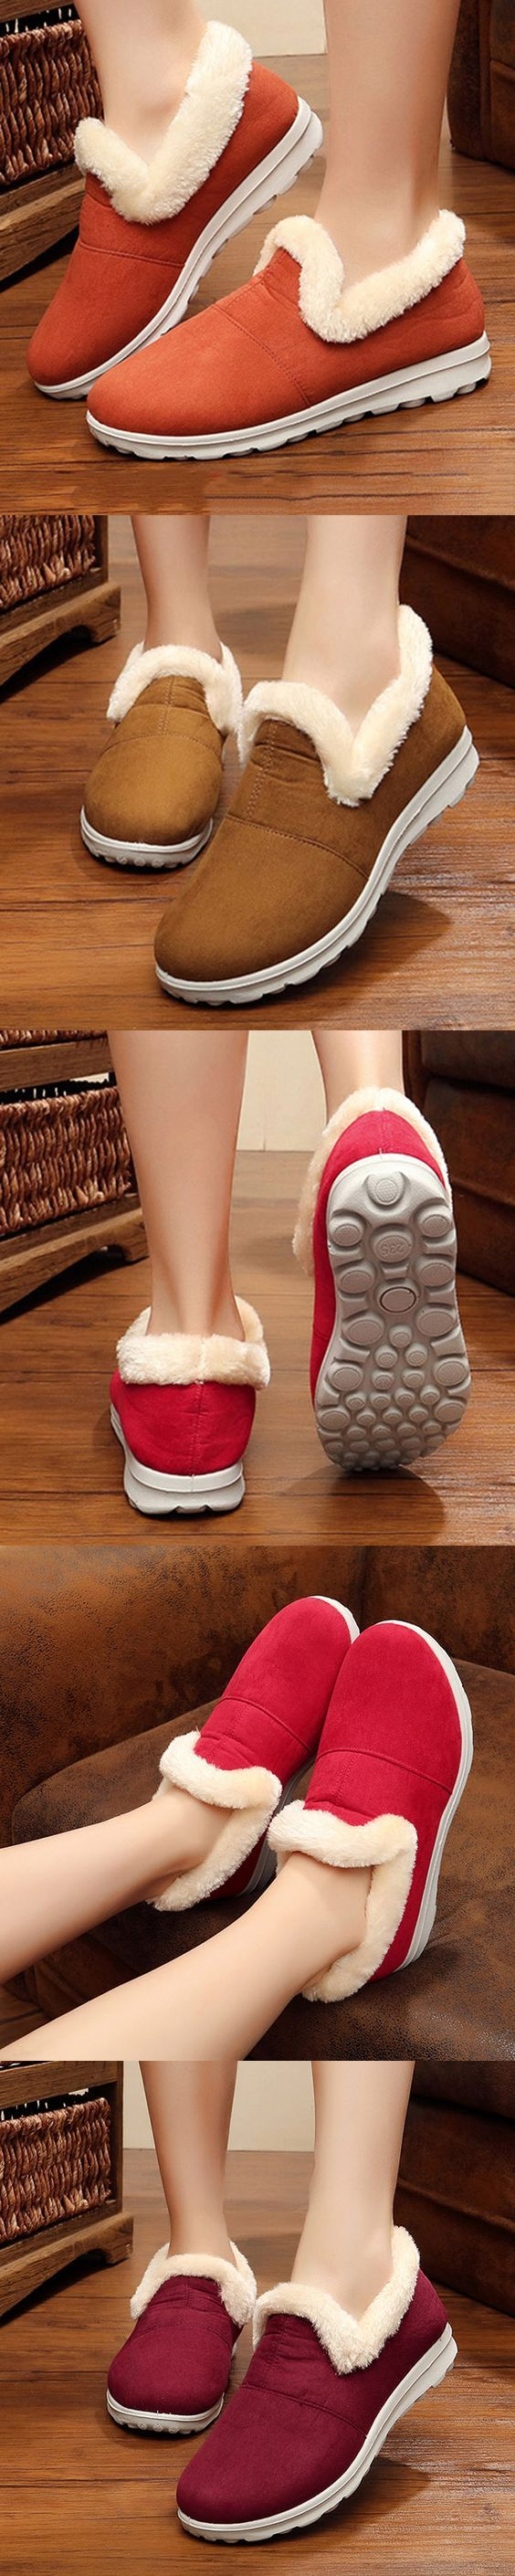 US$17.86 Comfortable Warm Fur Lining Lazy Casual Ankle Boots